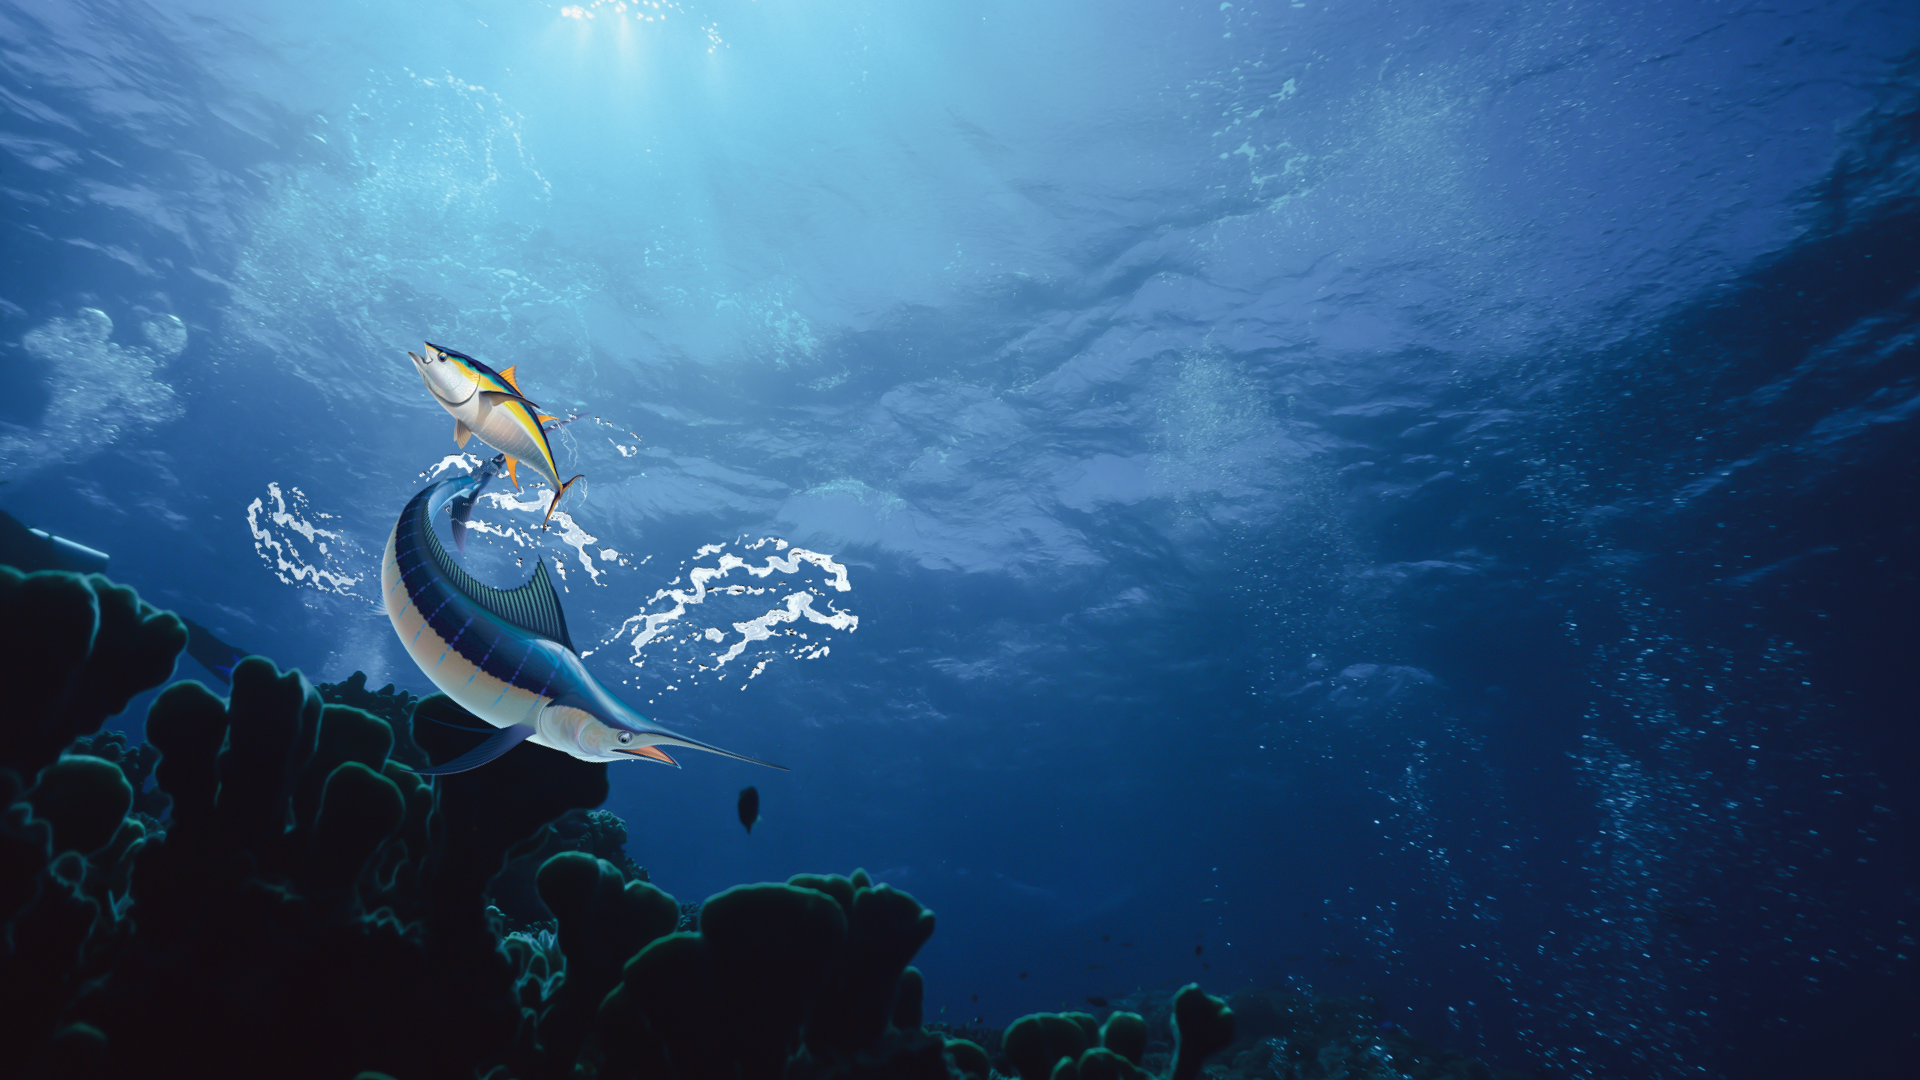 Two fish on Deep Blue Air main background